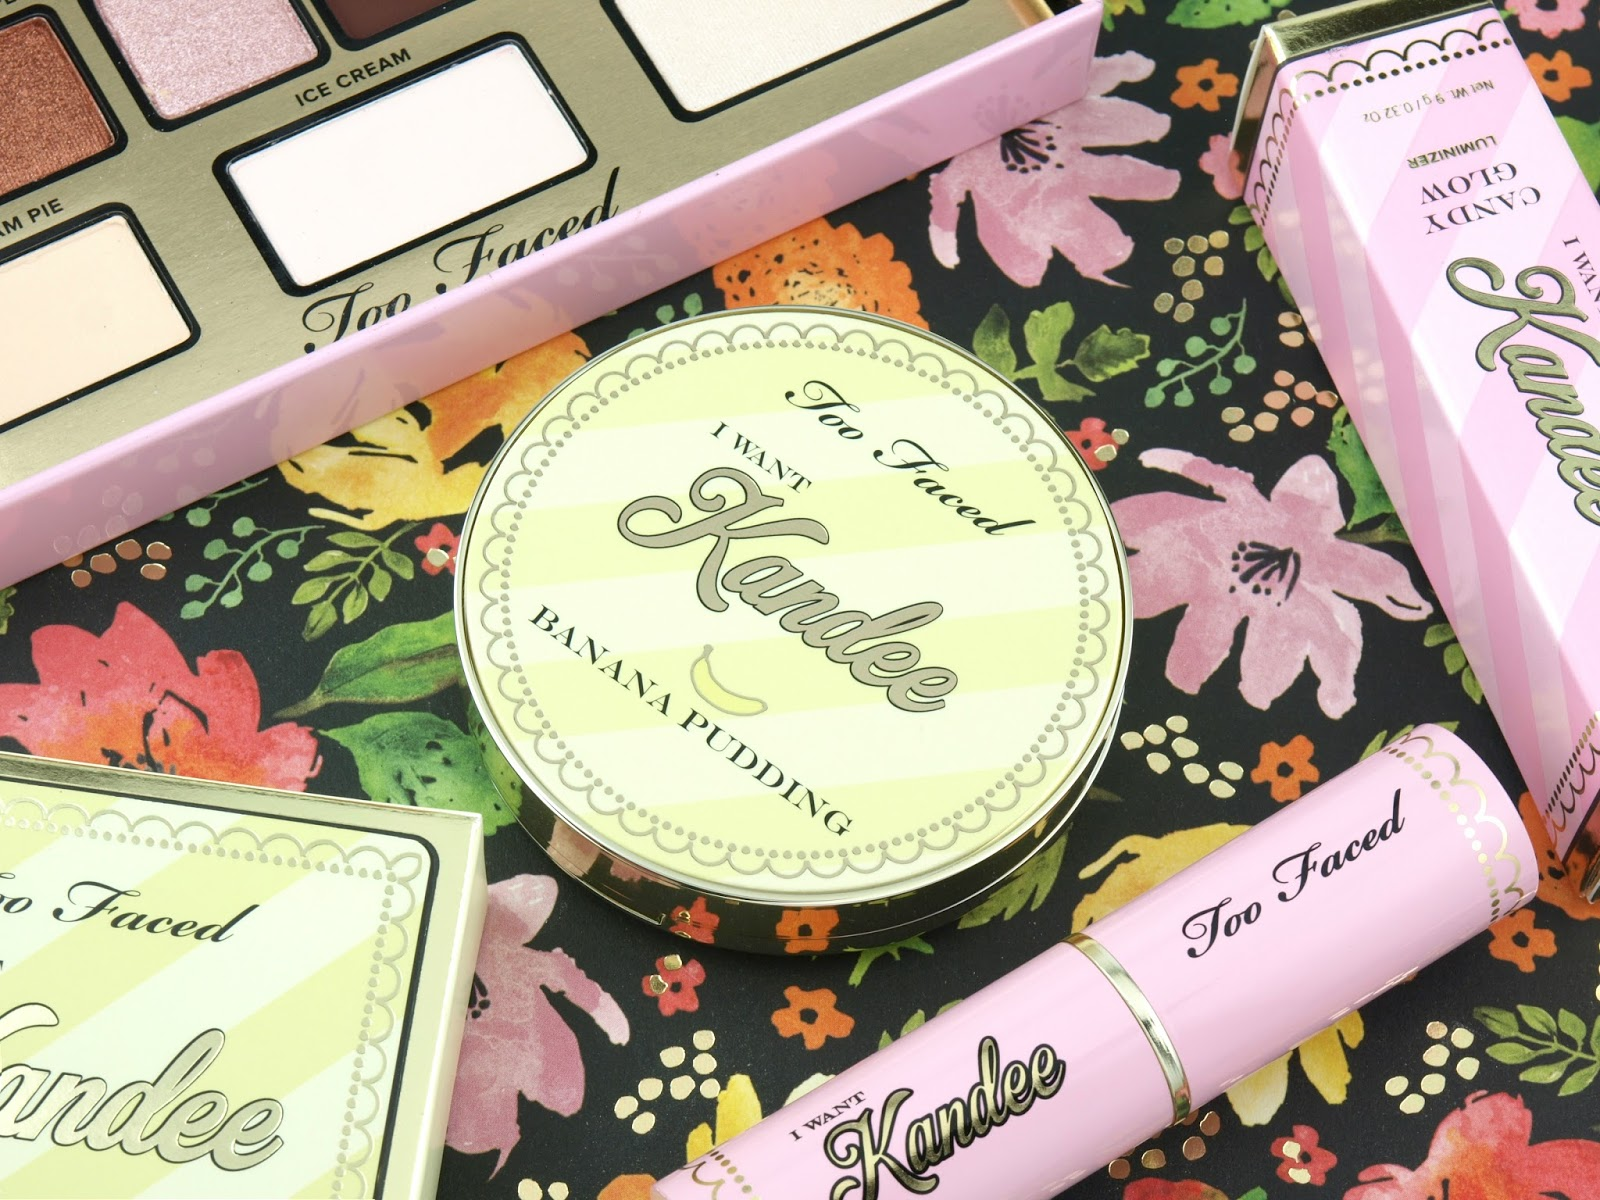 Too Faced x Kandee Johnson | I Want Kandee Banana Pudding Brightening Face Powder: Review and Swatches